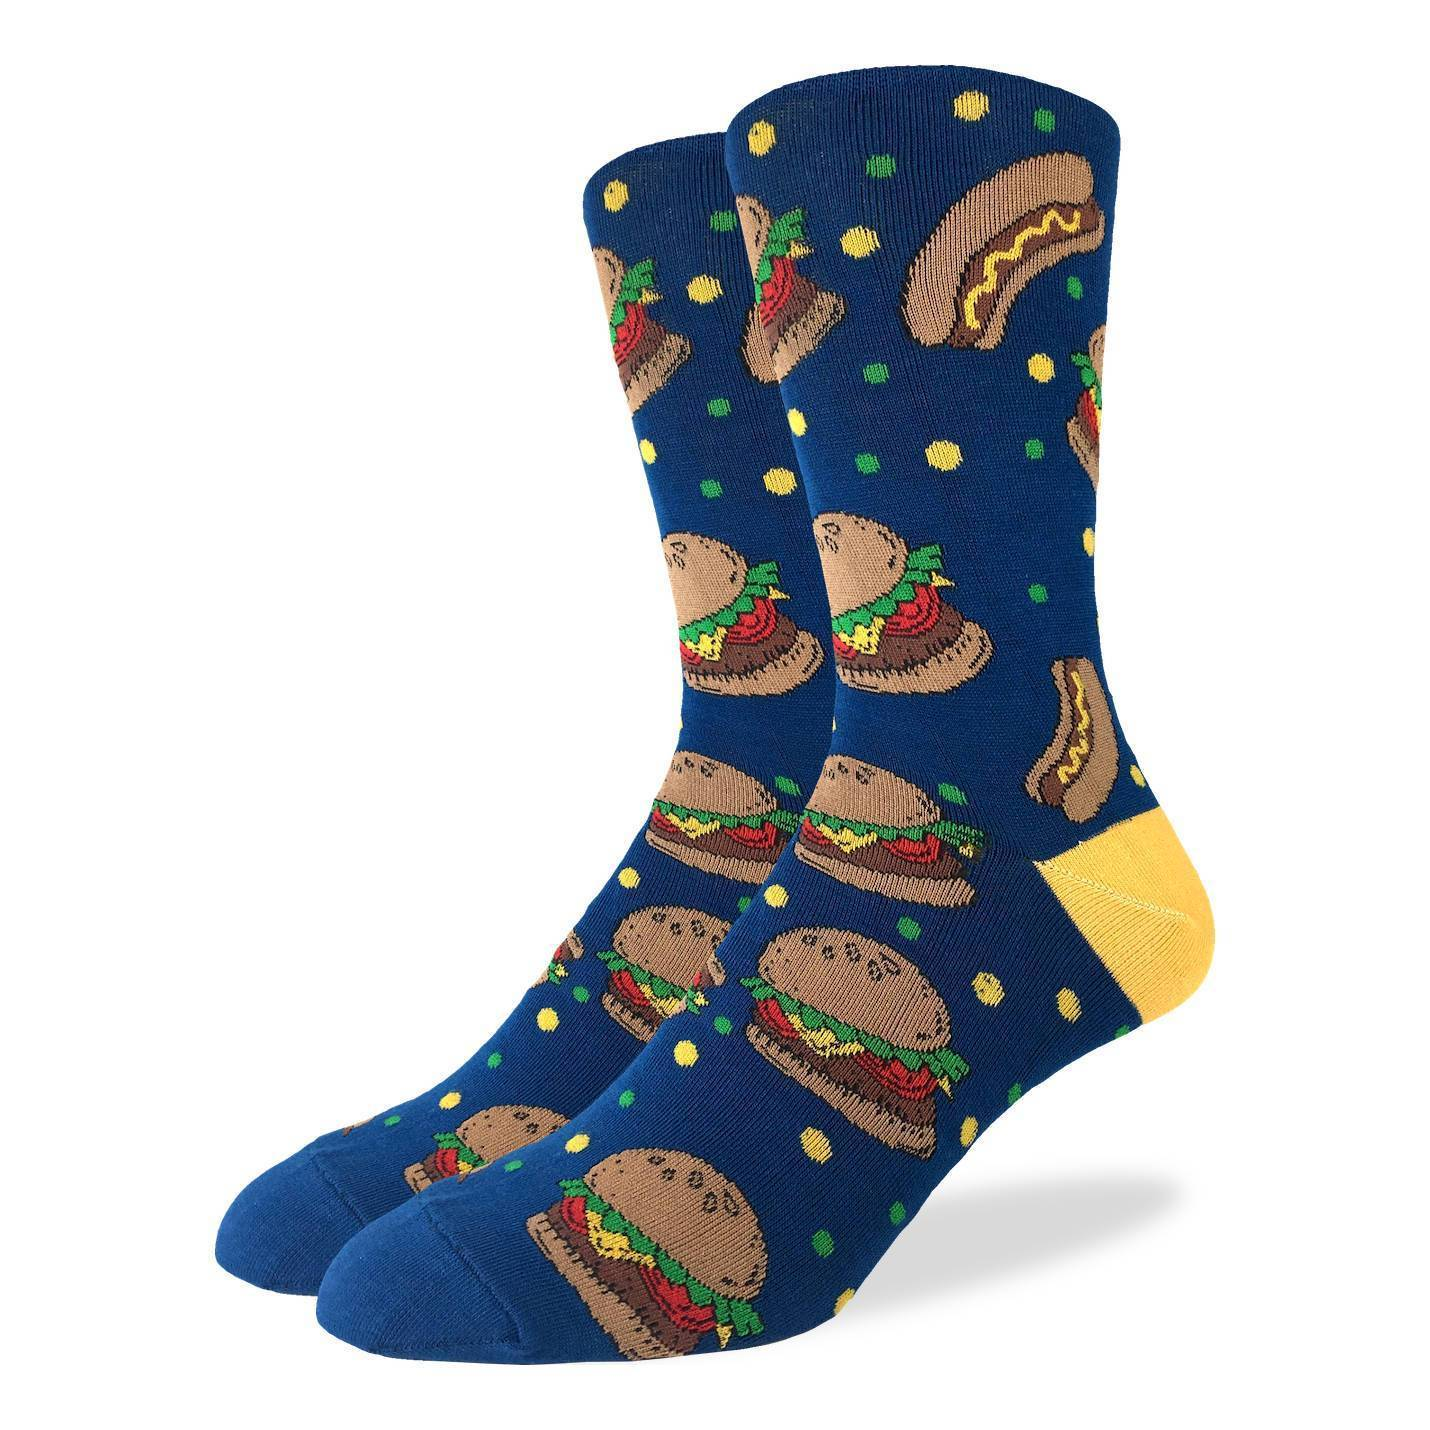 Men's Burgers & Hotdogs Socks - Good Luck Sock